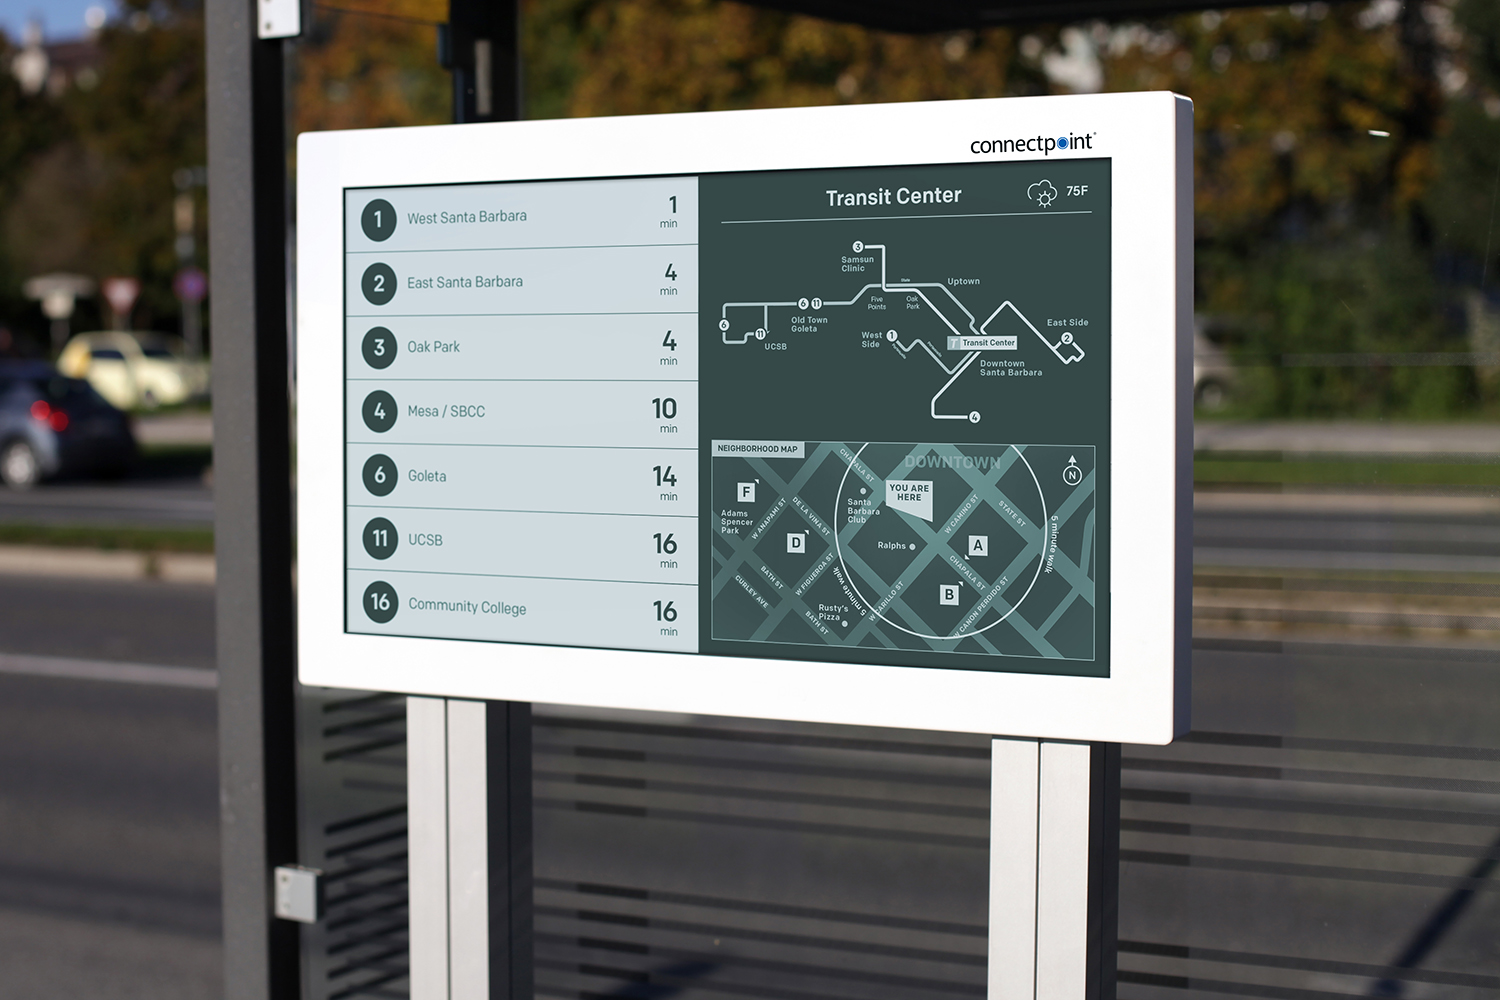 32-inch Digital Bus Stop are suitable for shelters with ample room for maps and large text